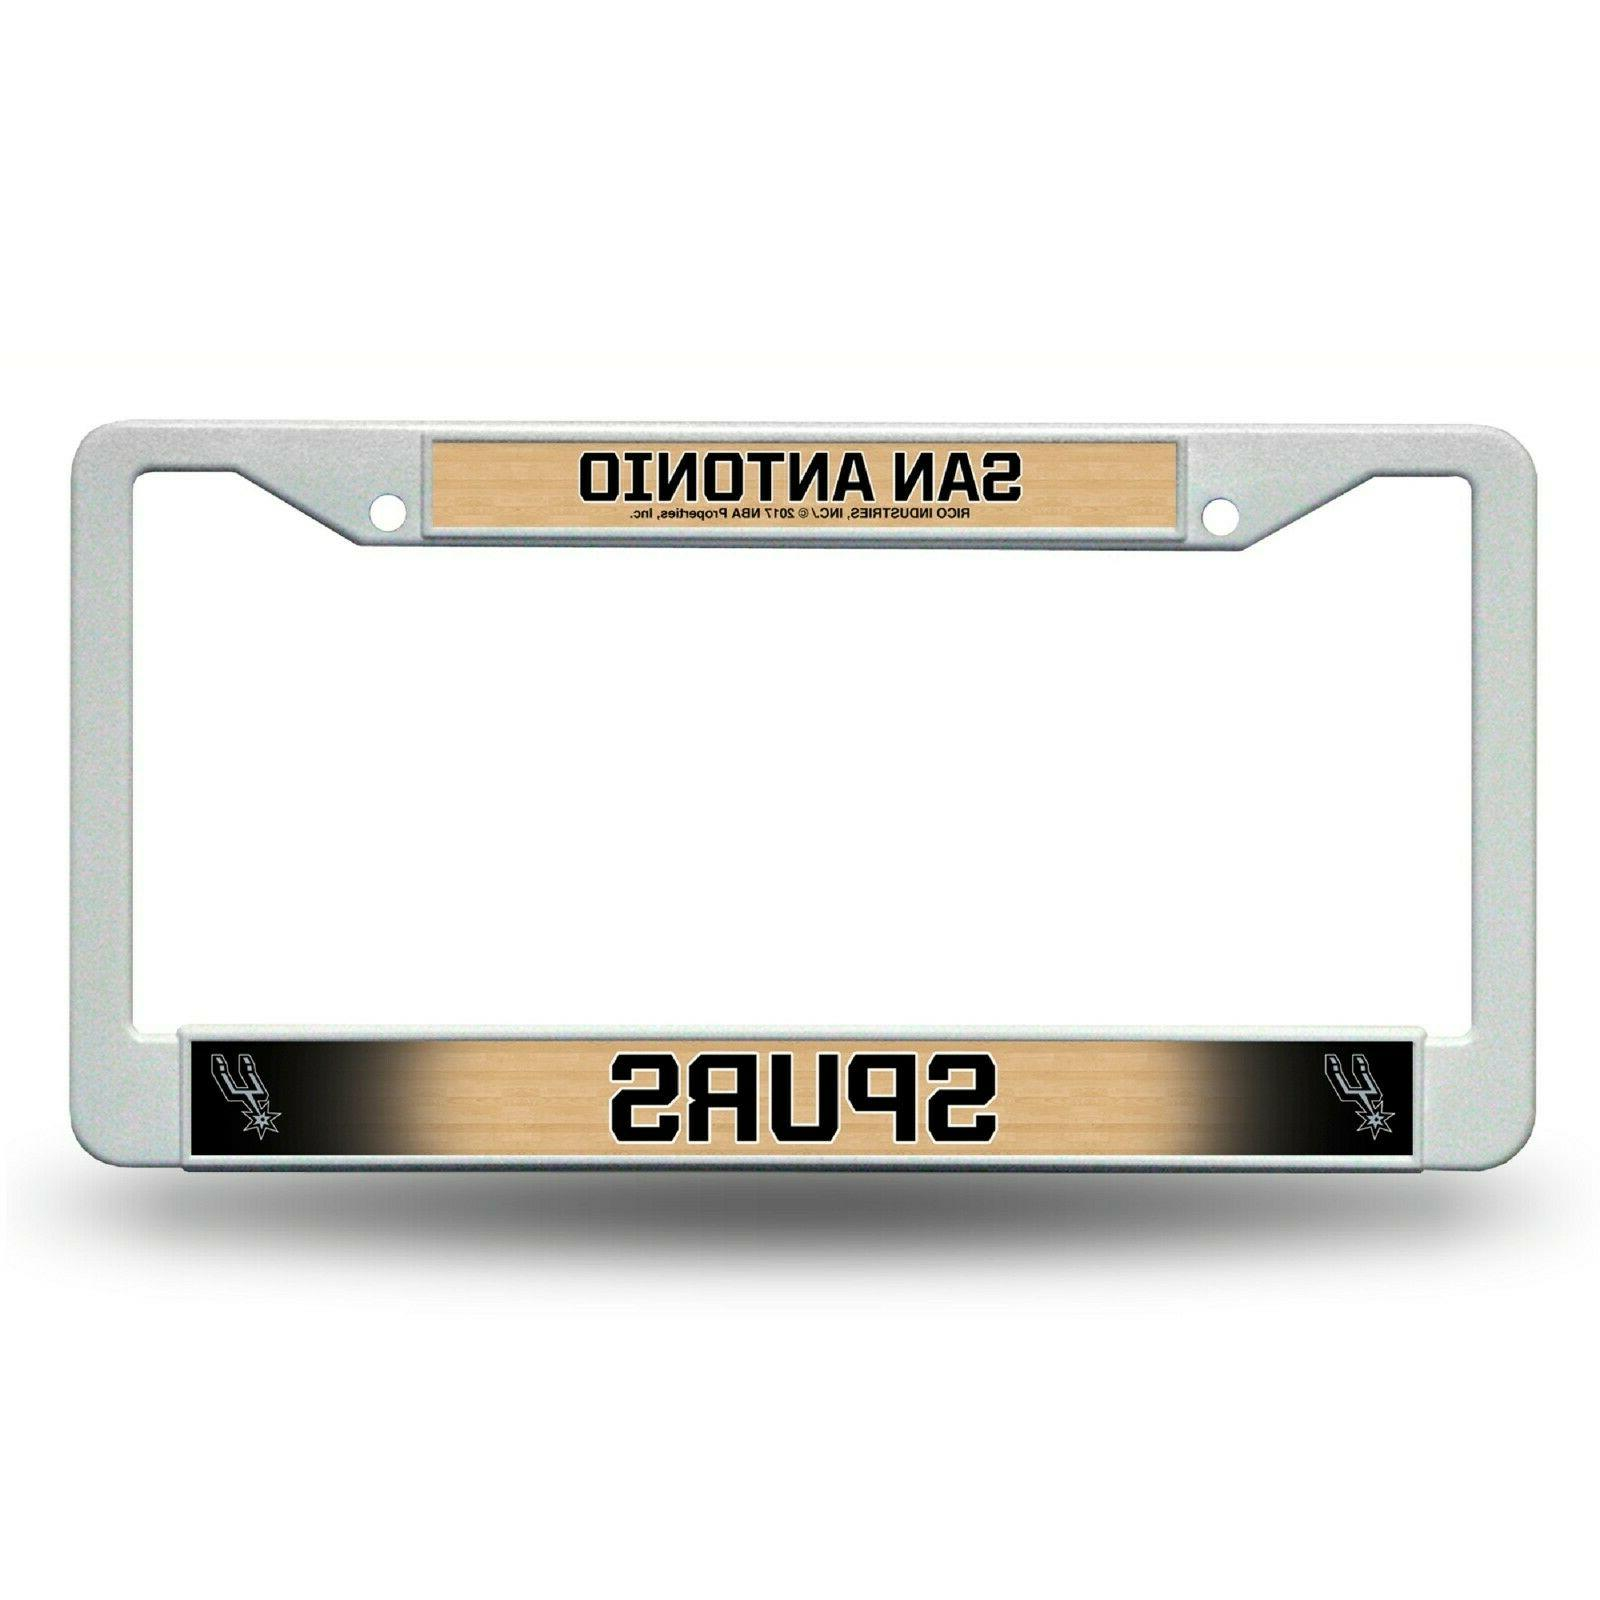 san antonio spurs plastic license plate frame